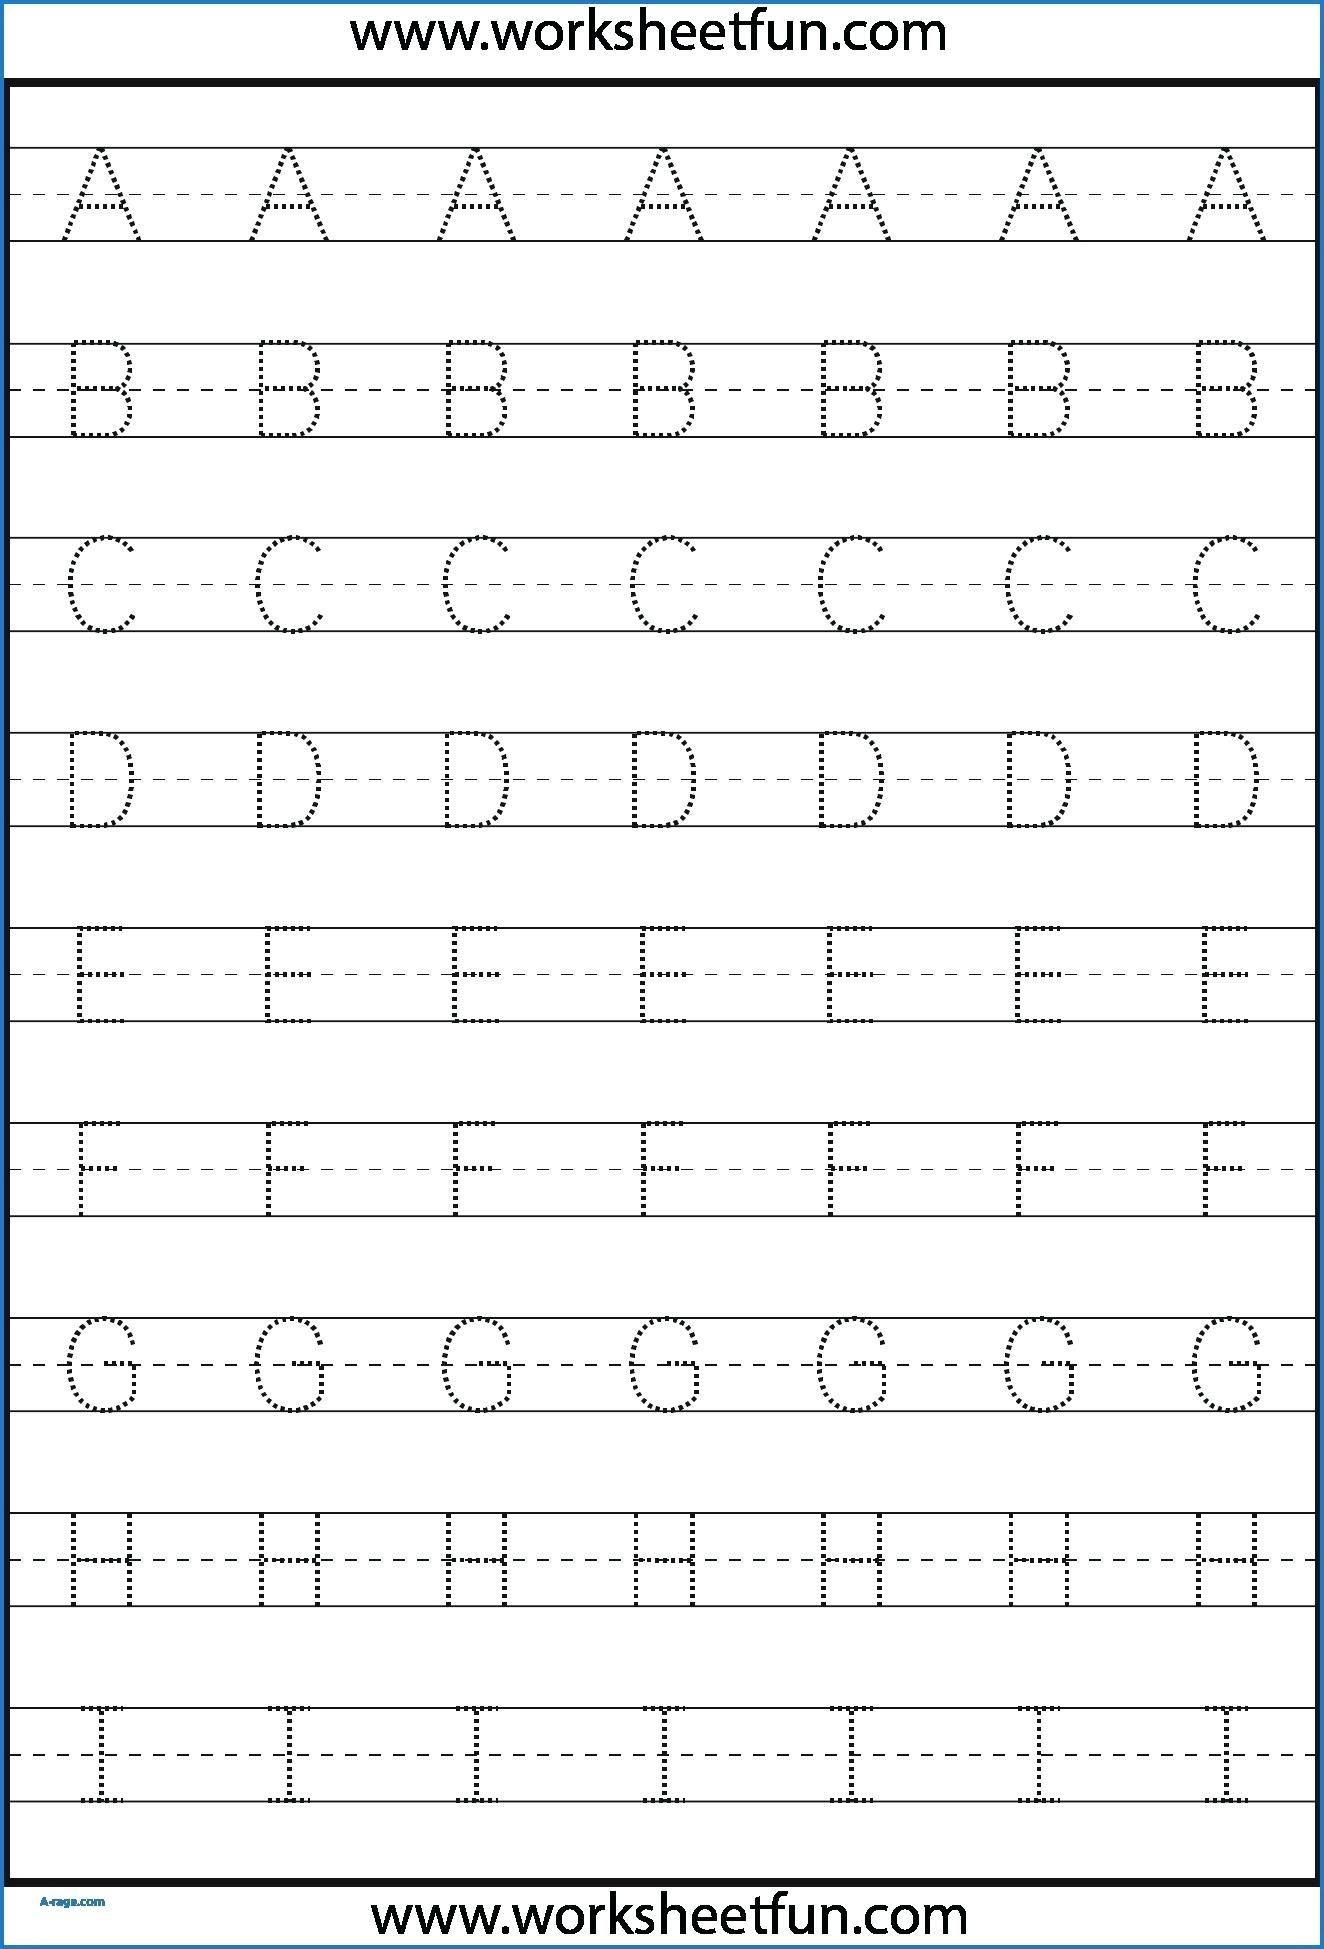 Kindergarten Letter Tracing Worksheets Pdf - Wallpaper Image regarding Kindergarten Tracing Letters And Numbers